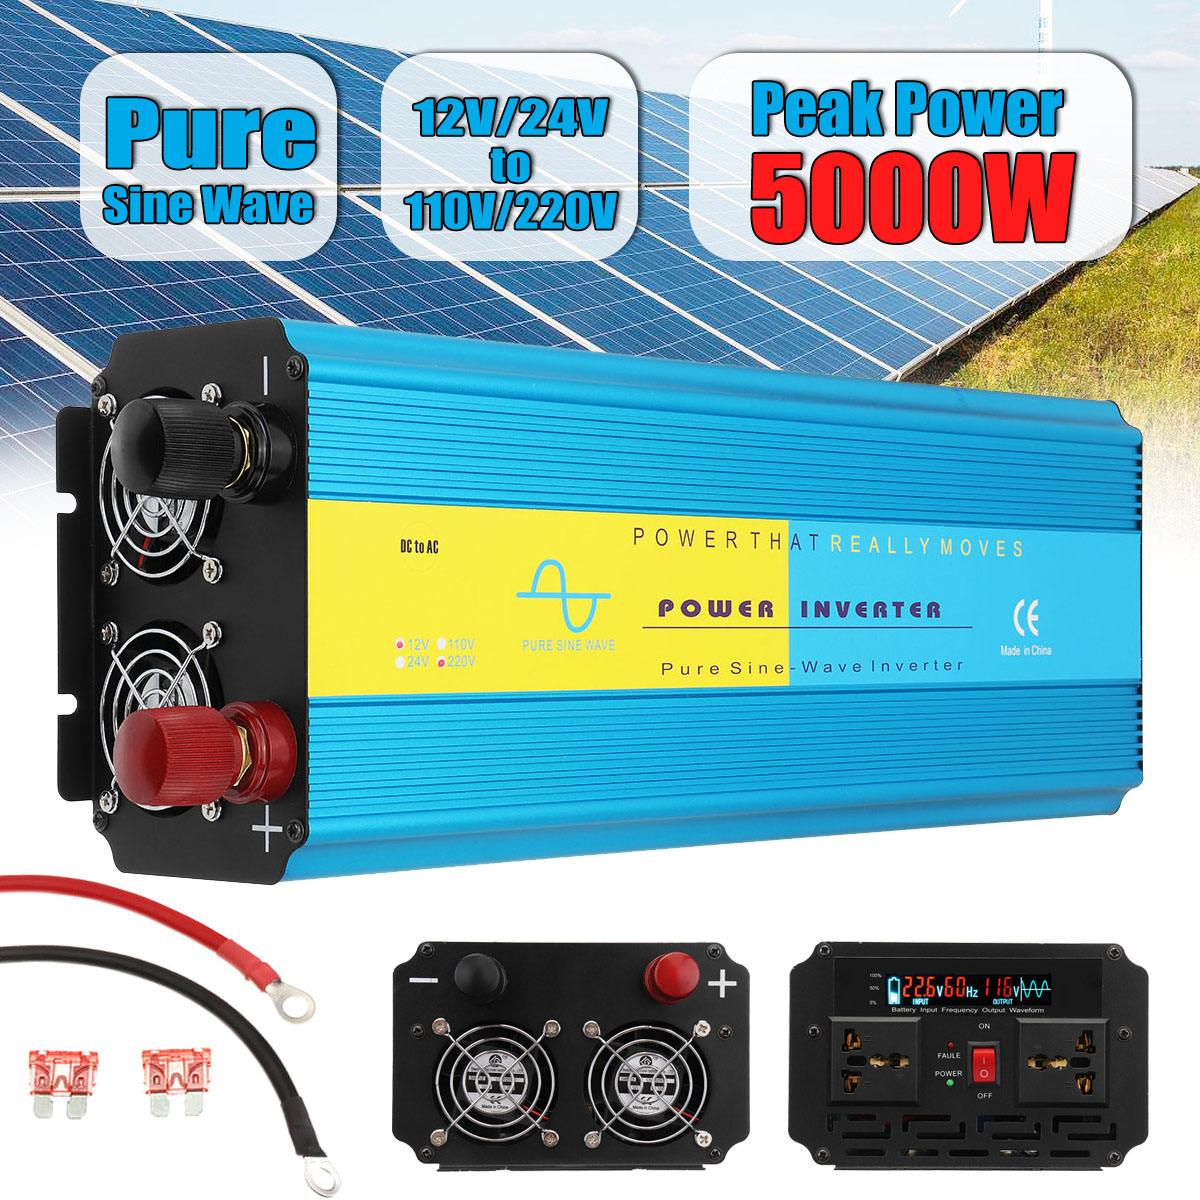 Pure Sine Wave Solar Inverter 12V 220V 2500W 5000W Peaks Voltage Converter Transformer DC 12V/24V To AC 110V/220V 50Hz/60HzPure Sine Wave Solar Inverter 12V 220V 2500W 5000W Peaks Voltage Converter Transformer DC 12V/24V To AC 110V/220V 50Hz/60Hz